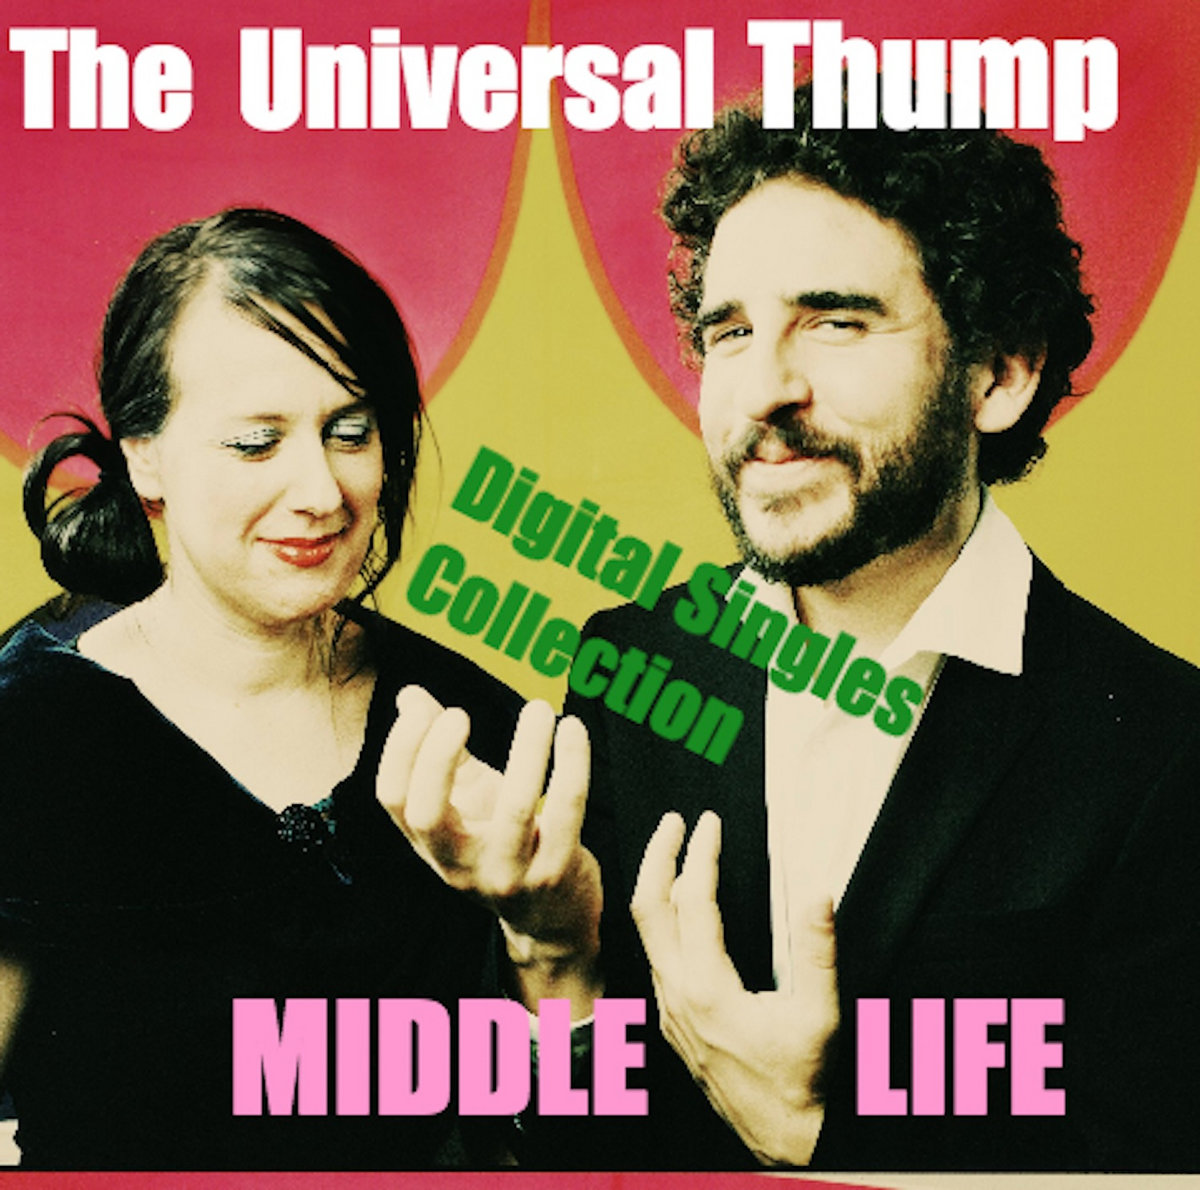 Middle Life by The Universal Thump